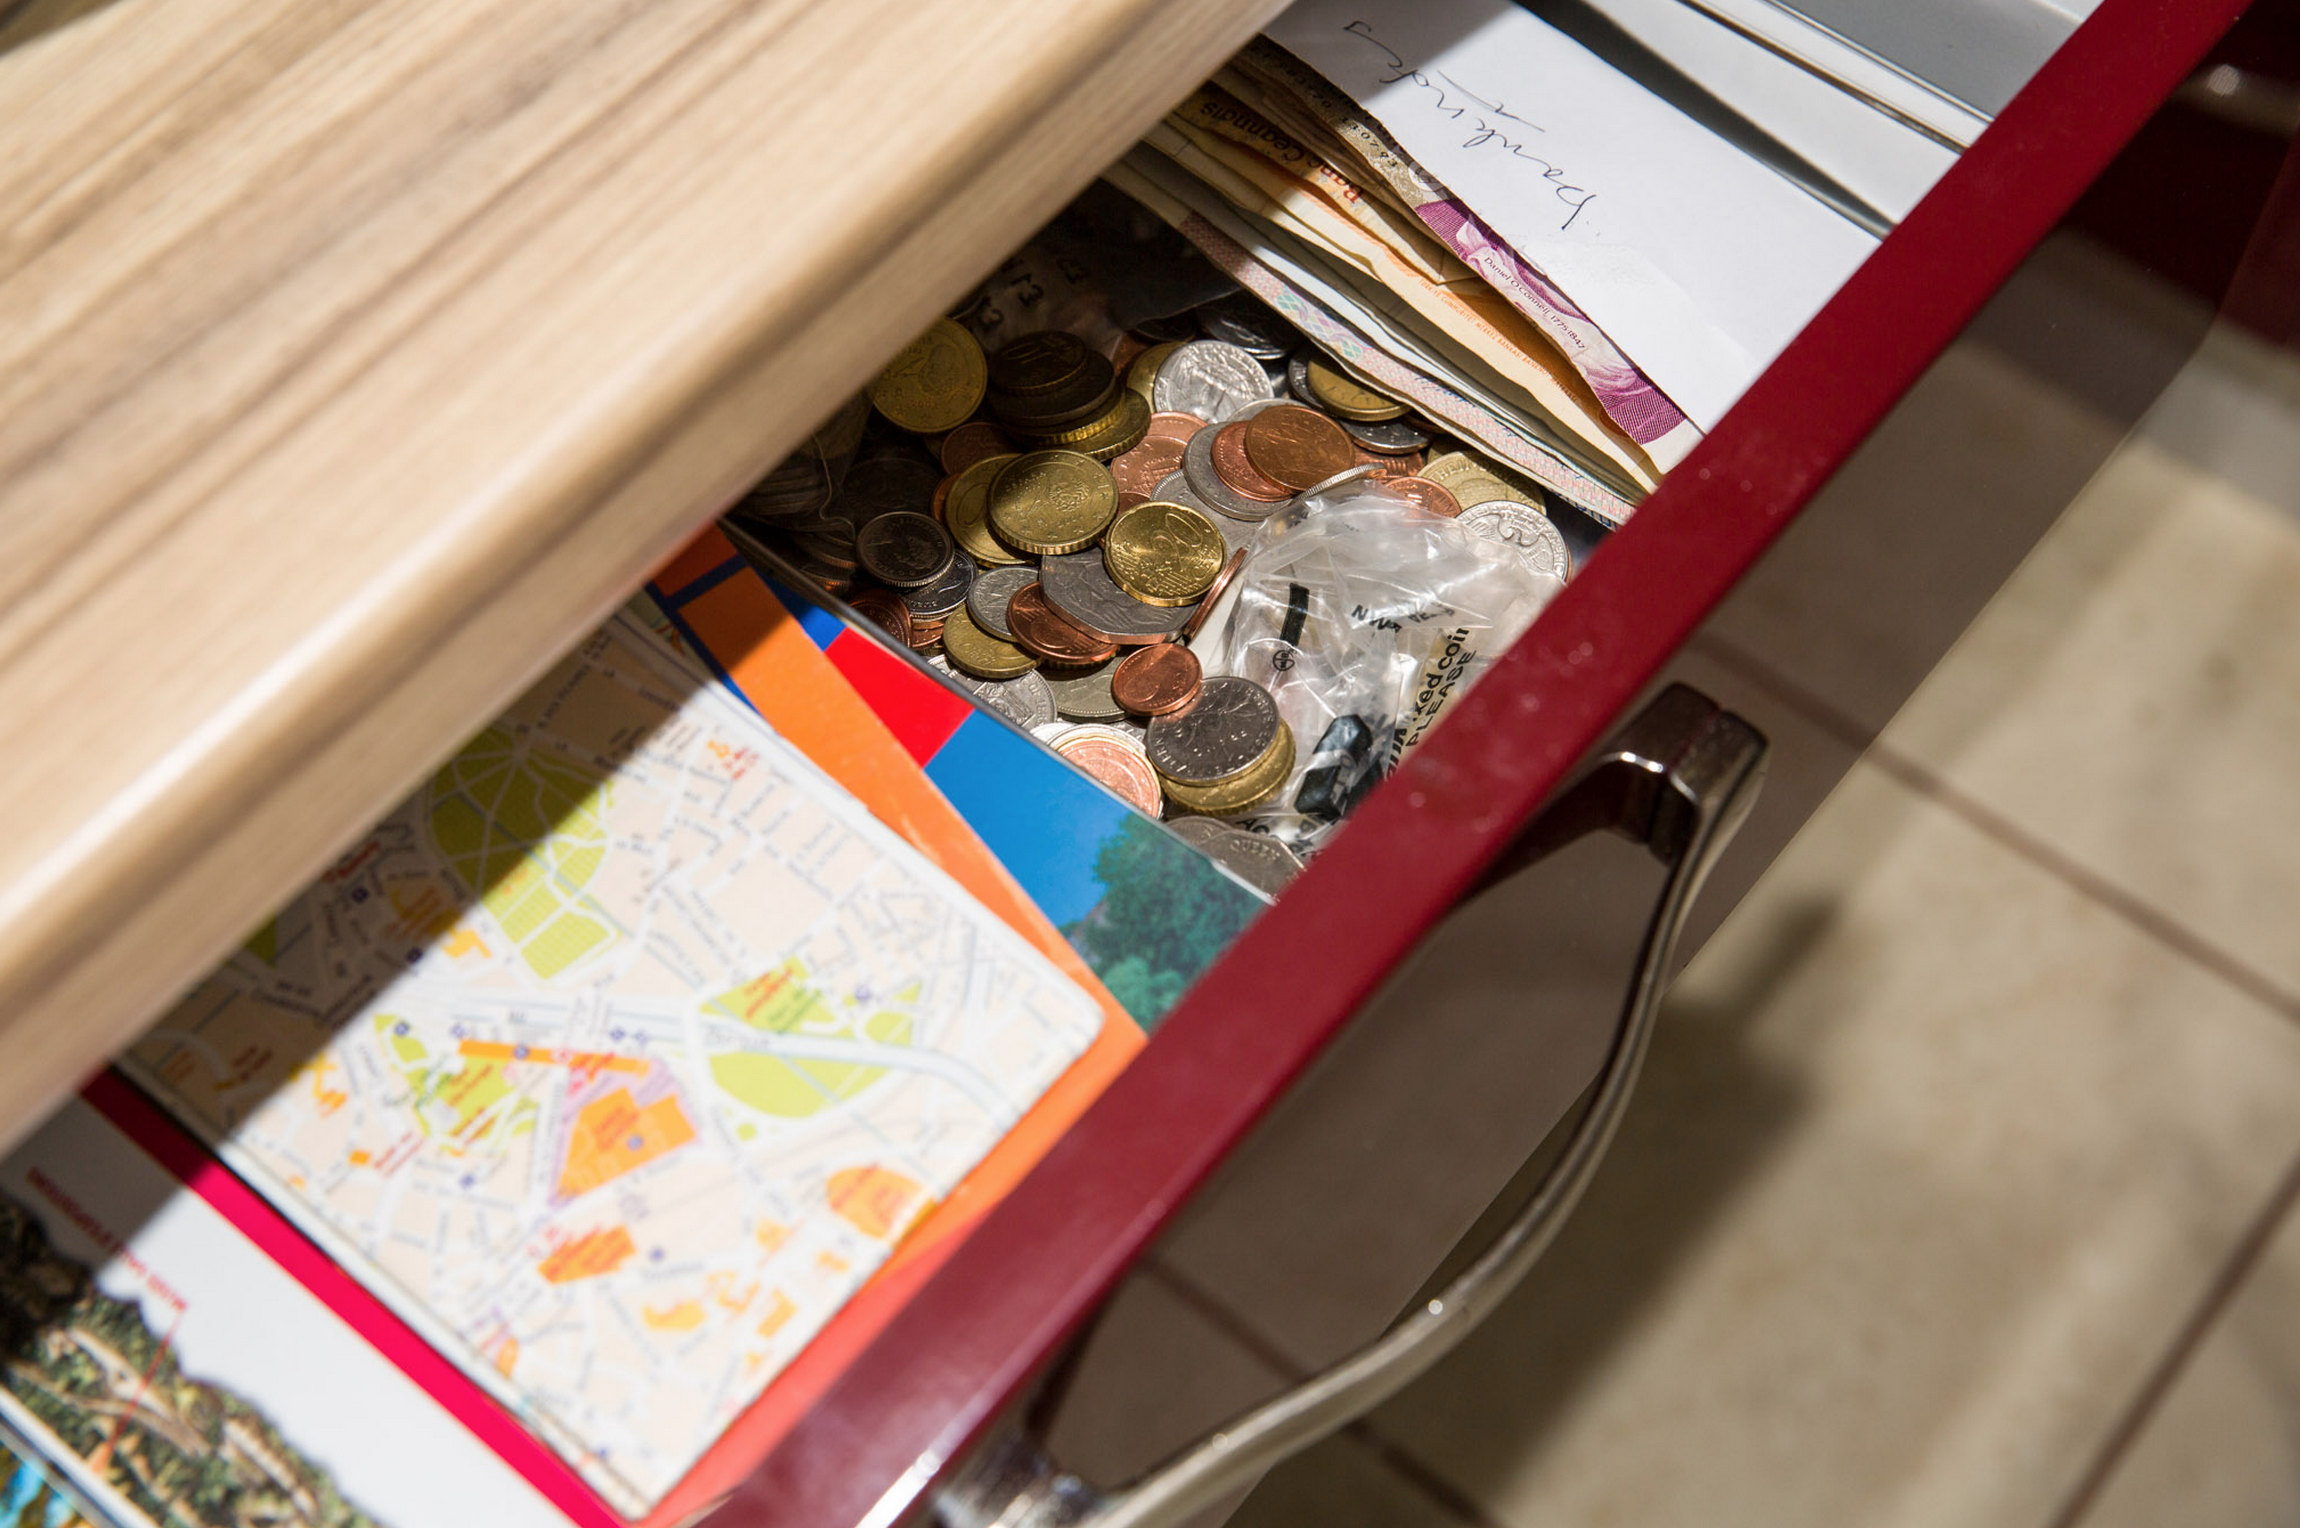 Leftover coins and notes in a drawer